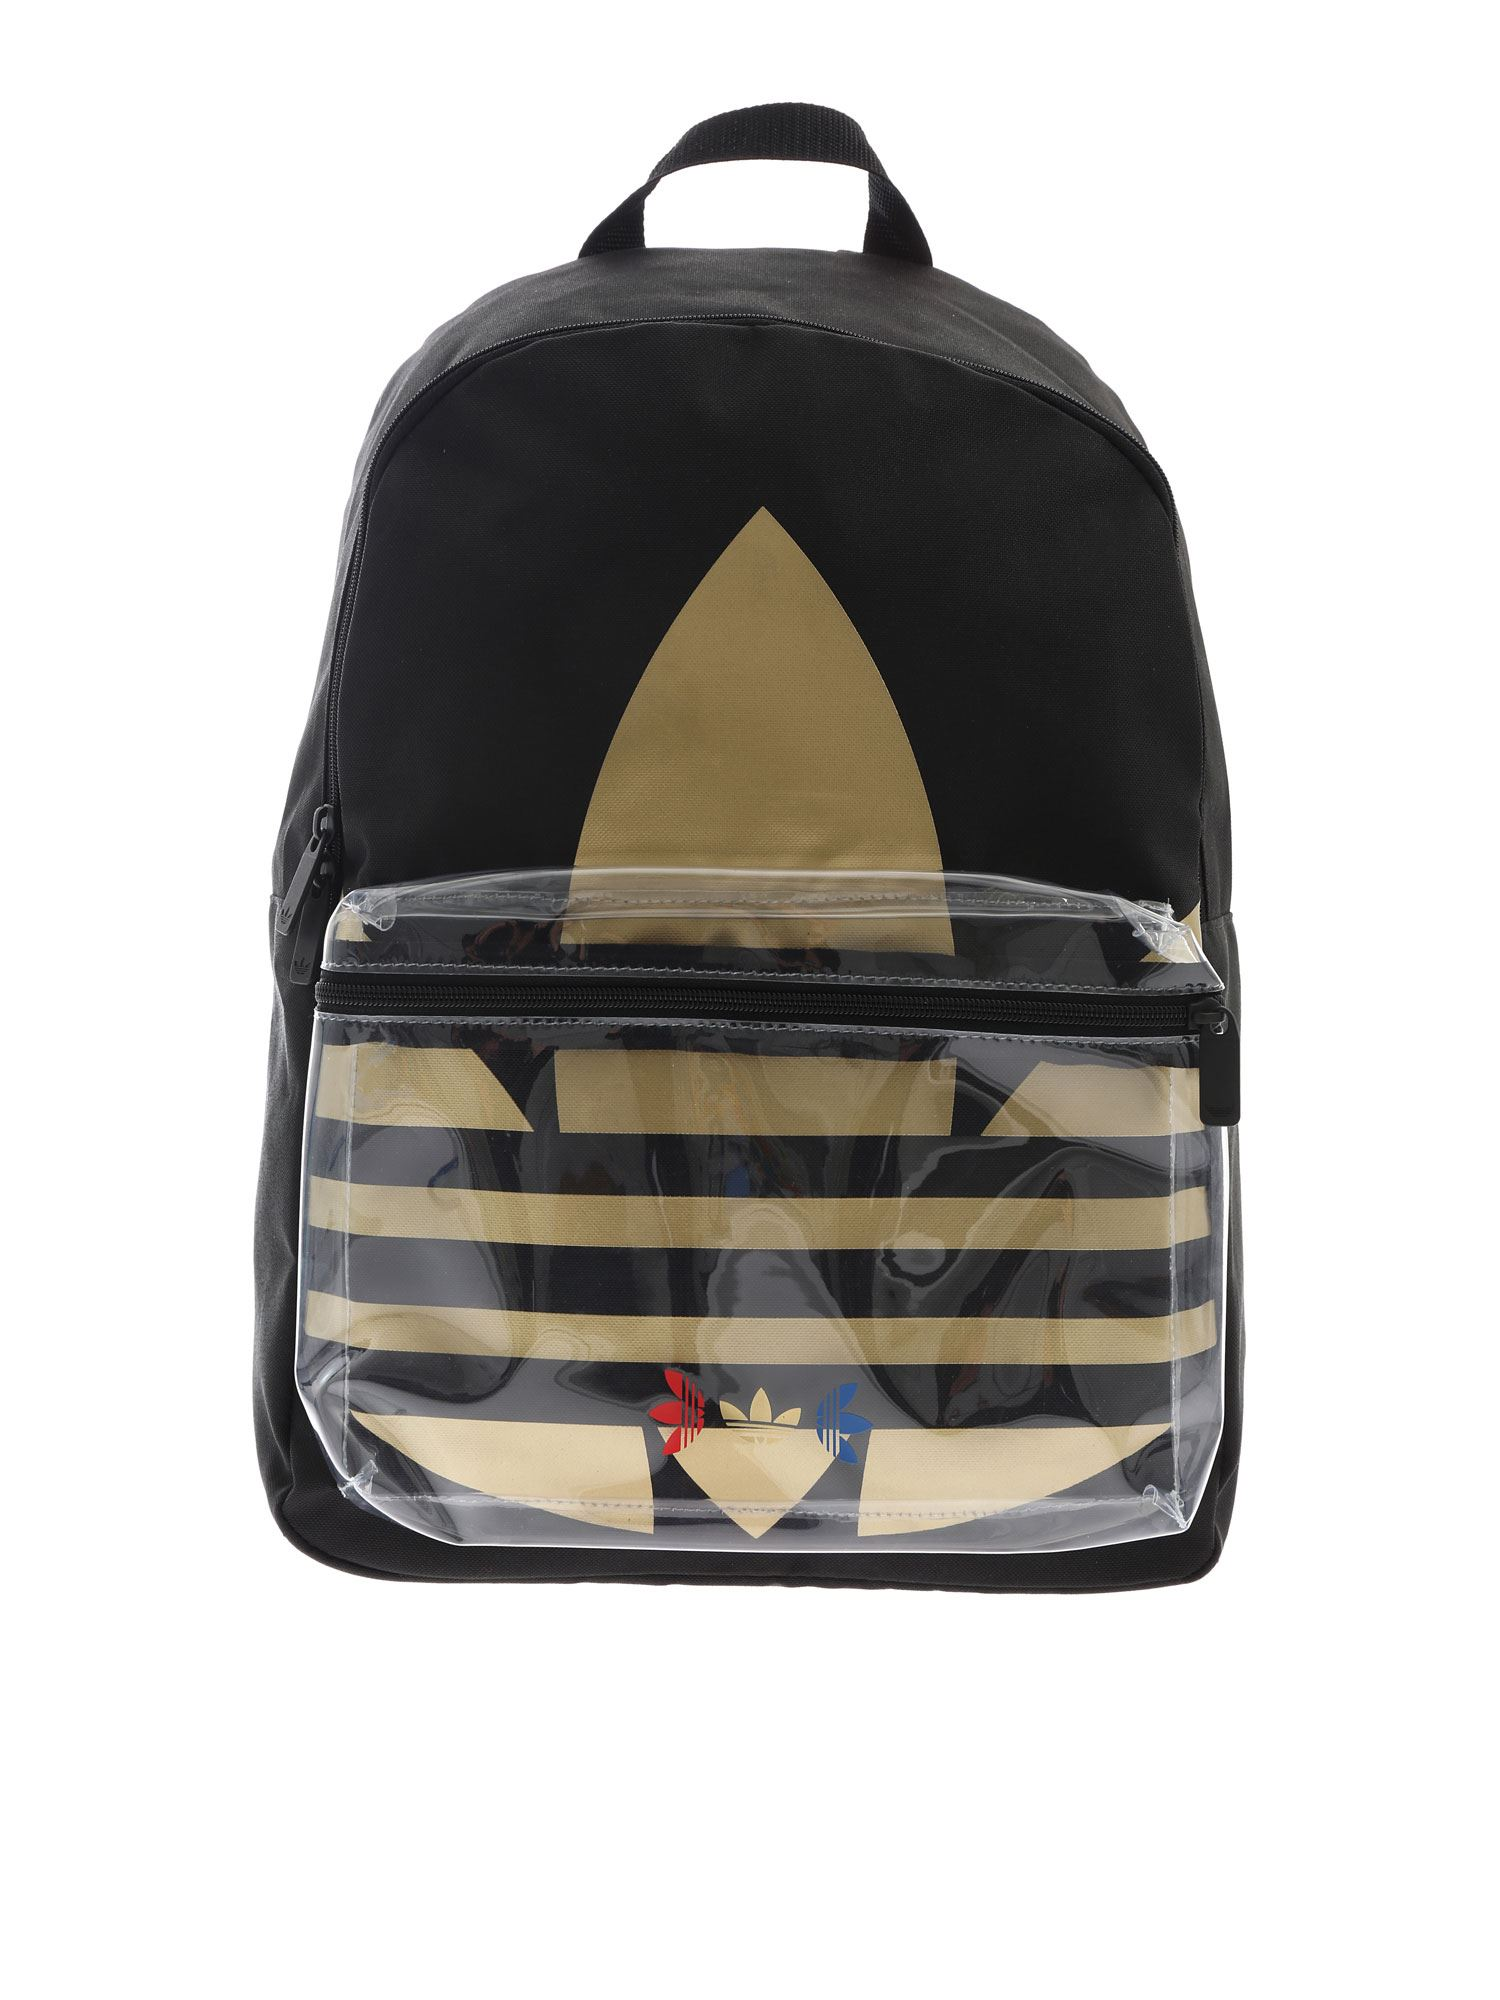 Adidas Originals ADIDAS ORIGINALS TREFOIL BACKPACK IN BLACK